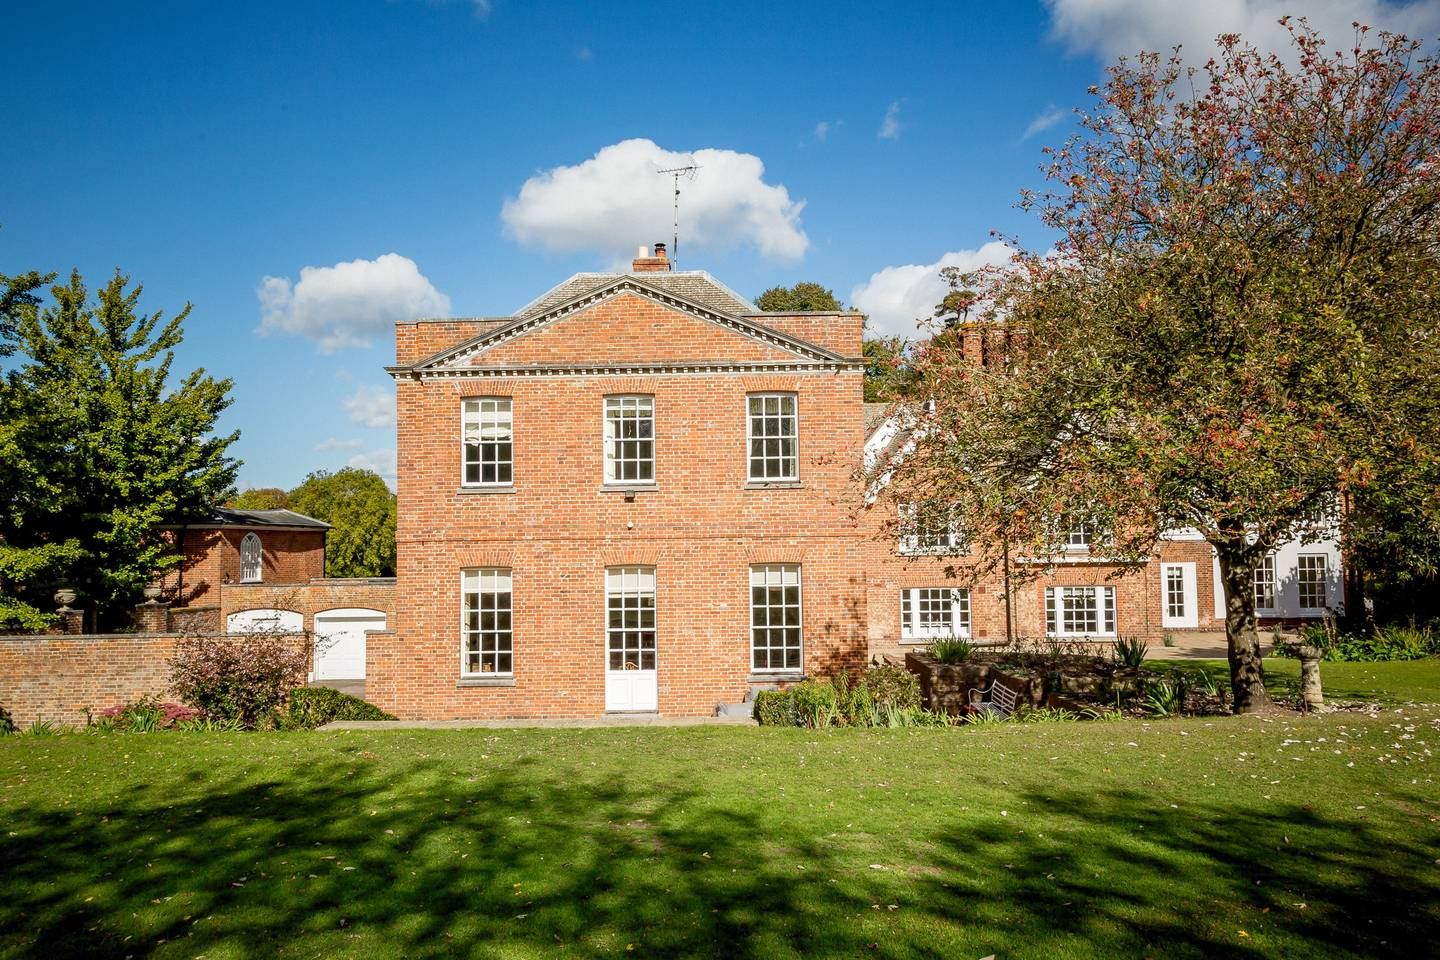 airbnb abbey house on audley estate england